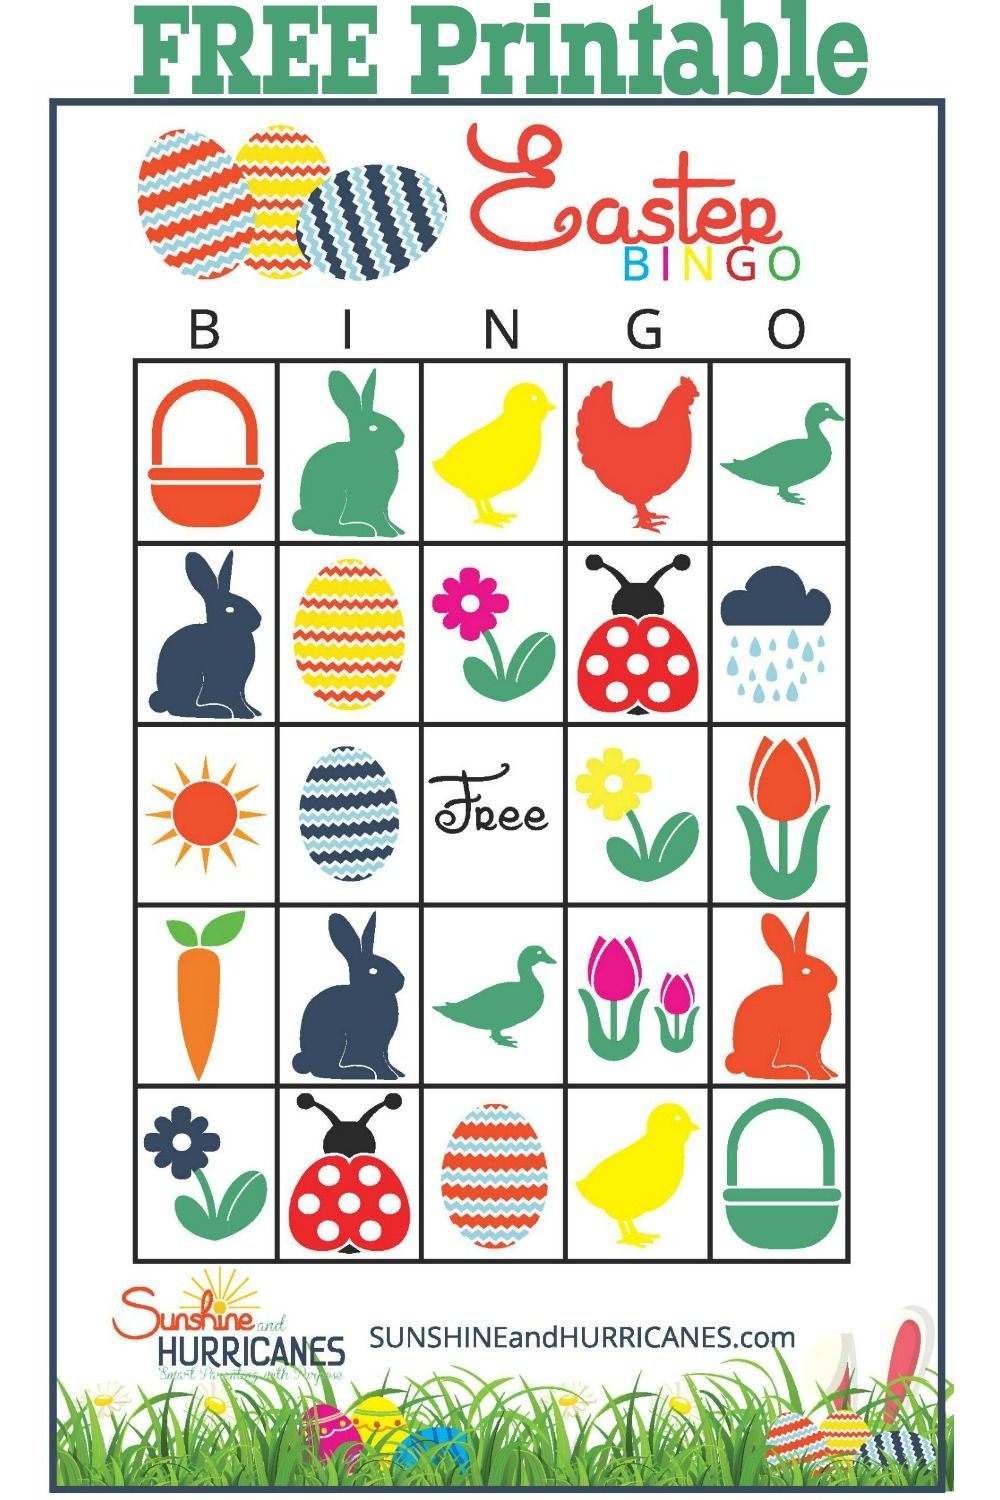 Blue Bunny, Red Basket, Green Duck   Best Of S&h   Easter, Easter - Easter Games For Adults Printable Free